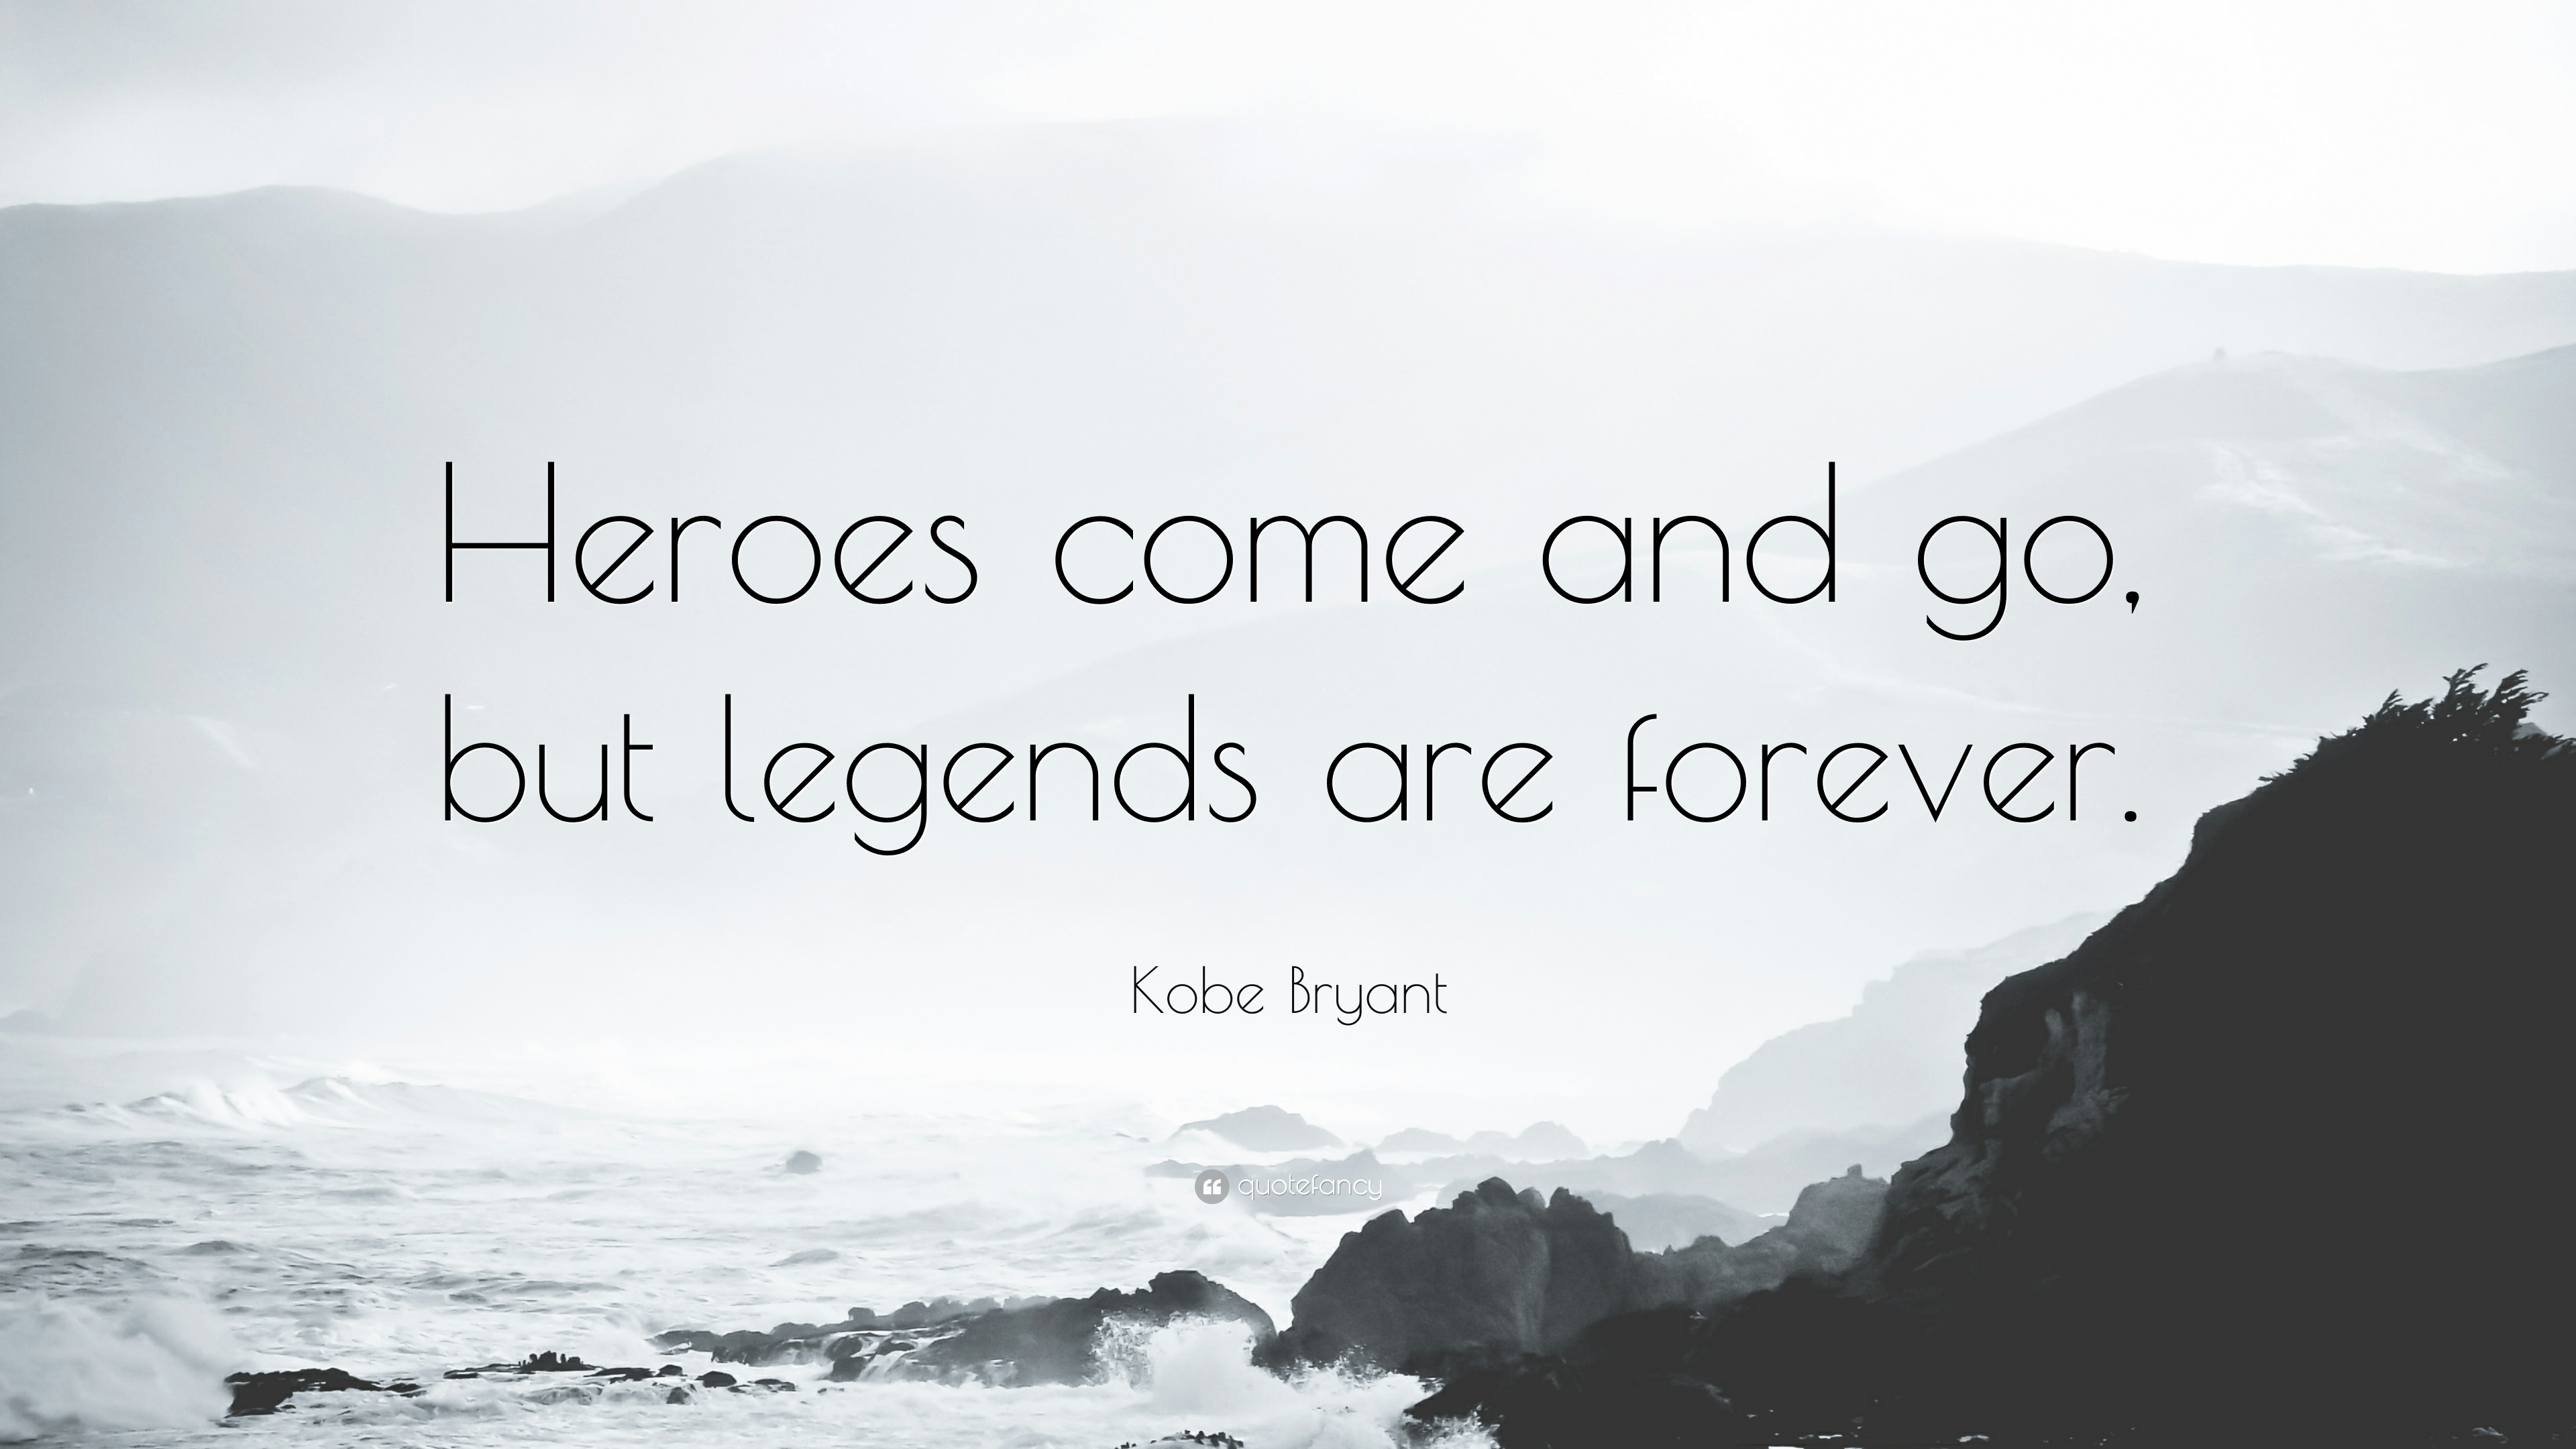 Casey Neistat Quotes Wallpaper Kobe Bryant Quote Heroes Come And Go But Legends Are